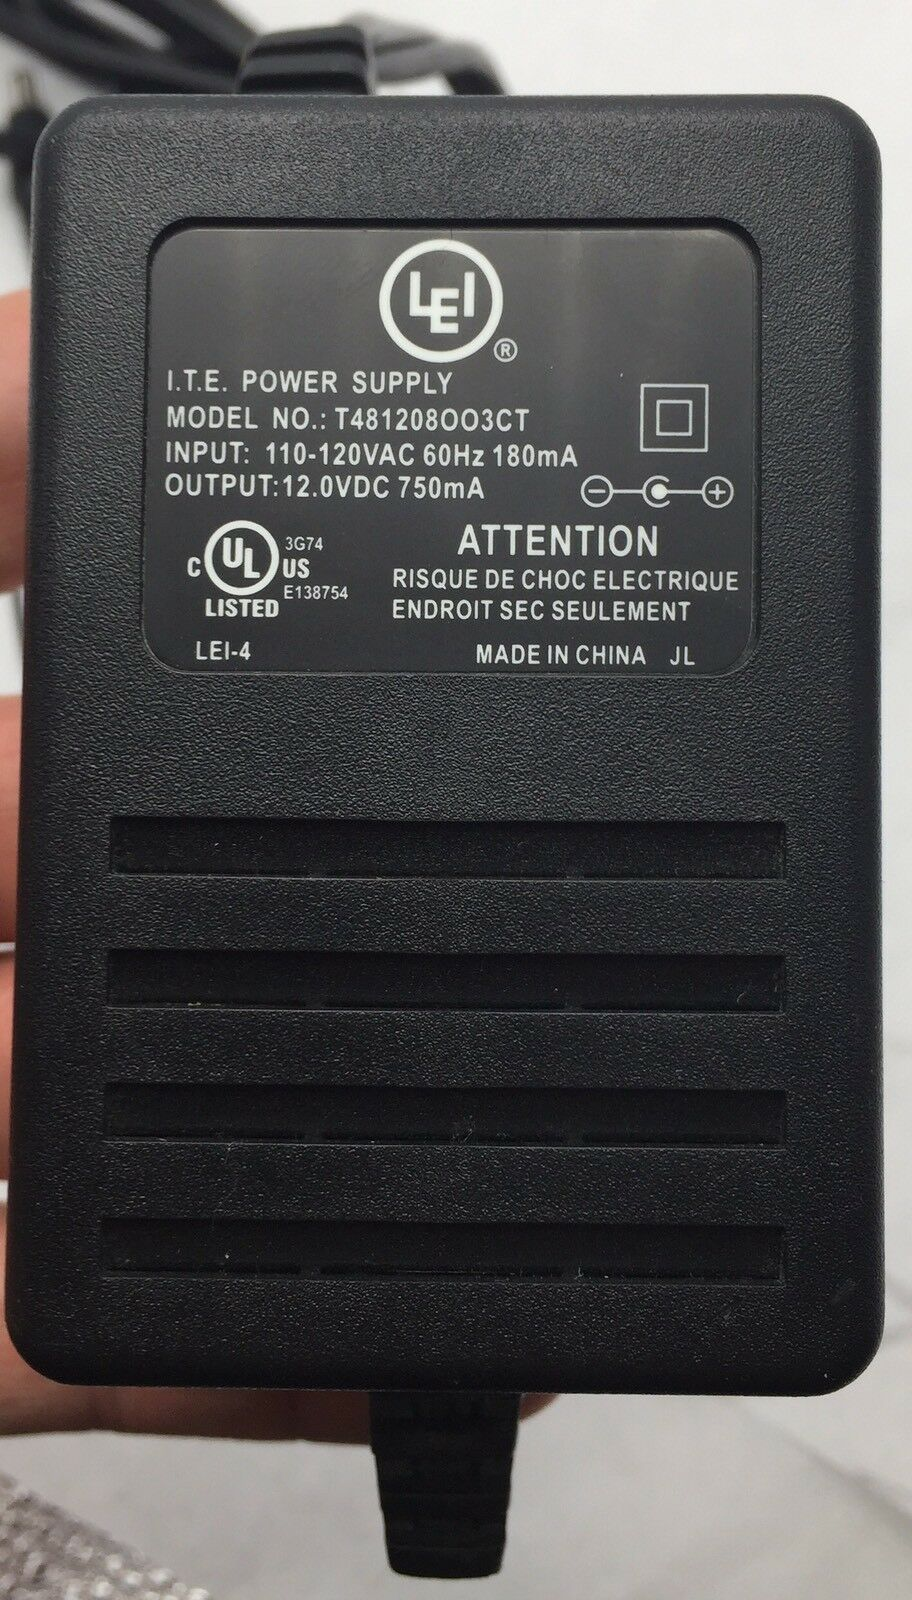 Leader Electronics Inc Lei Ite T481208oo3ct 12vdc 750ma Power Supply New To From 120vac How Does It Work Adapter 1 Of 4only 2 Available